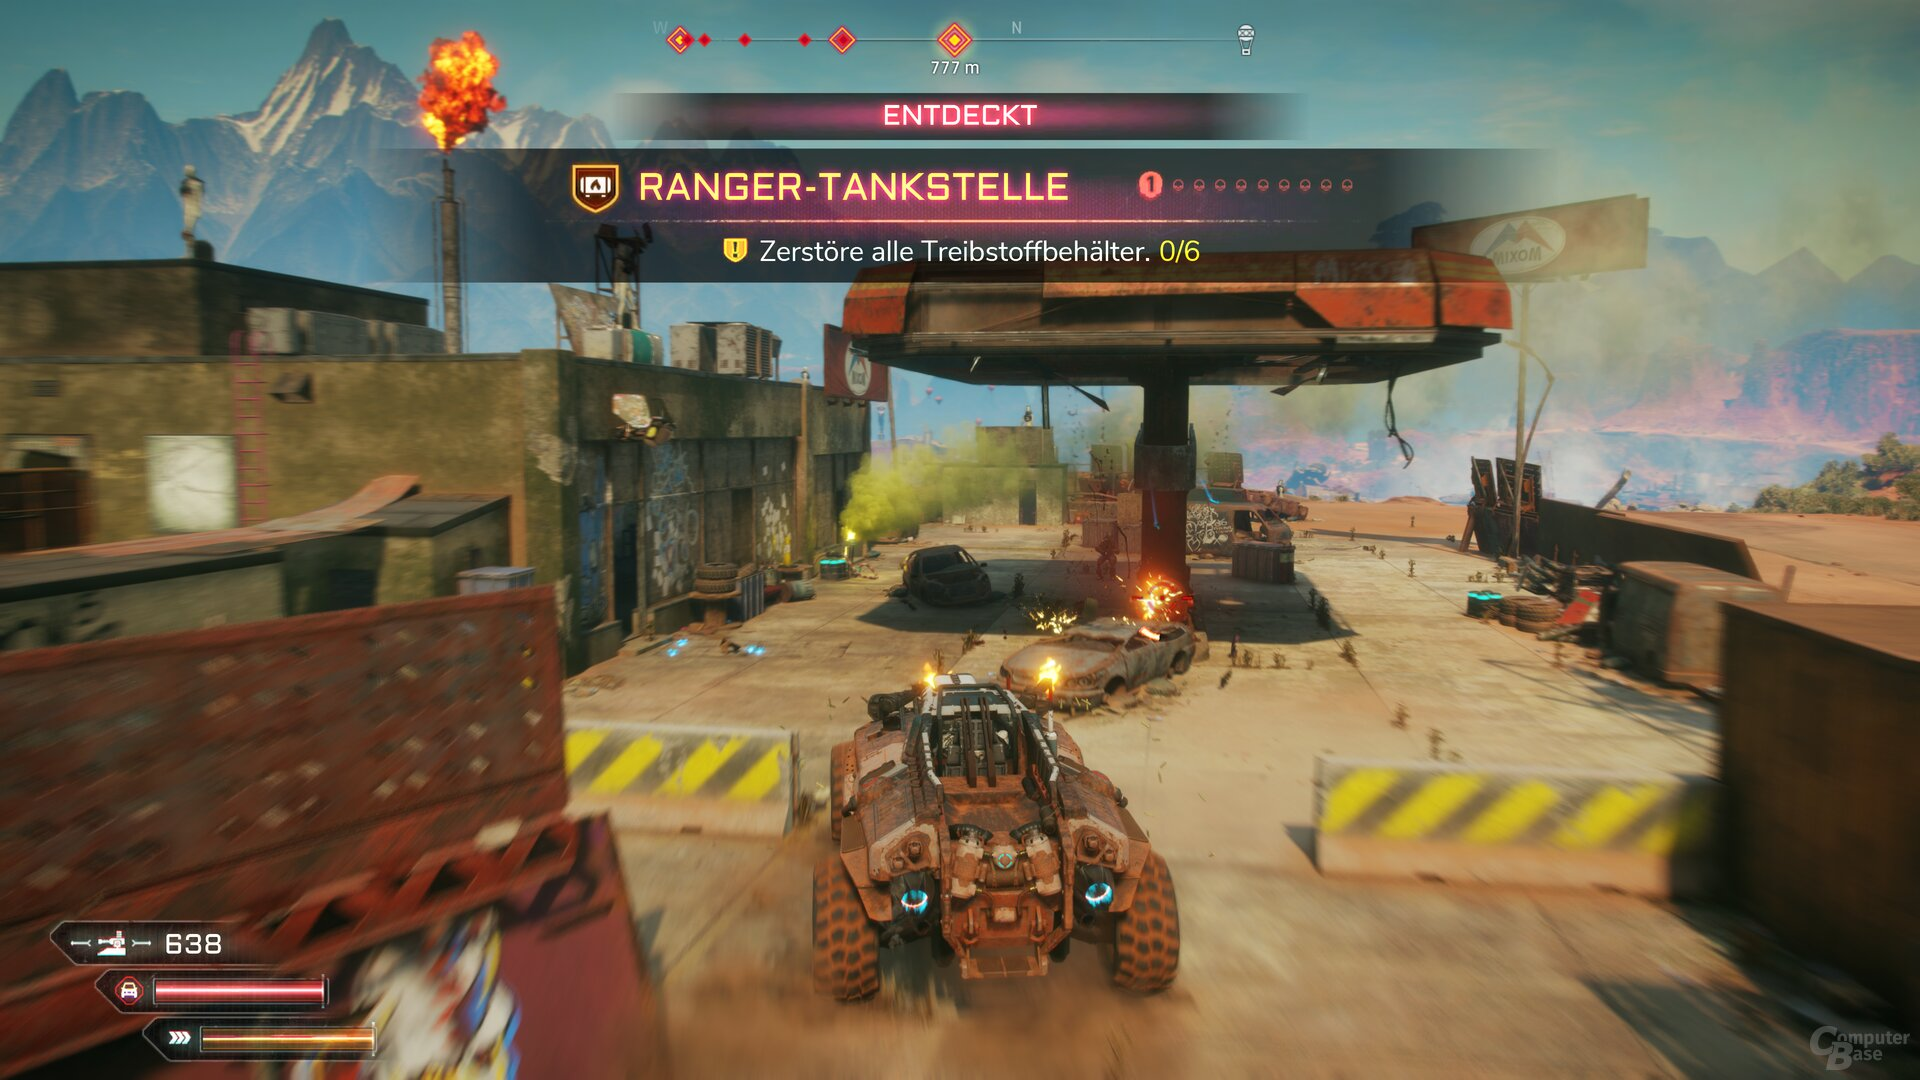 Rage2 Screenshot 2019.05.13 - 10.41.26.21